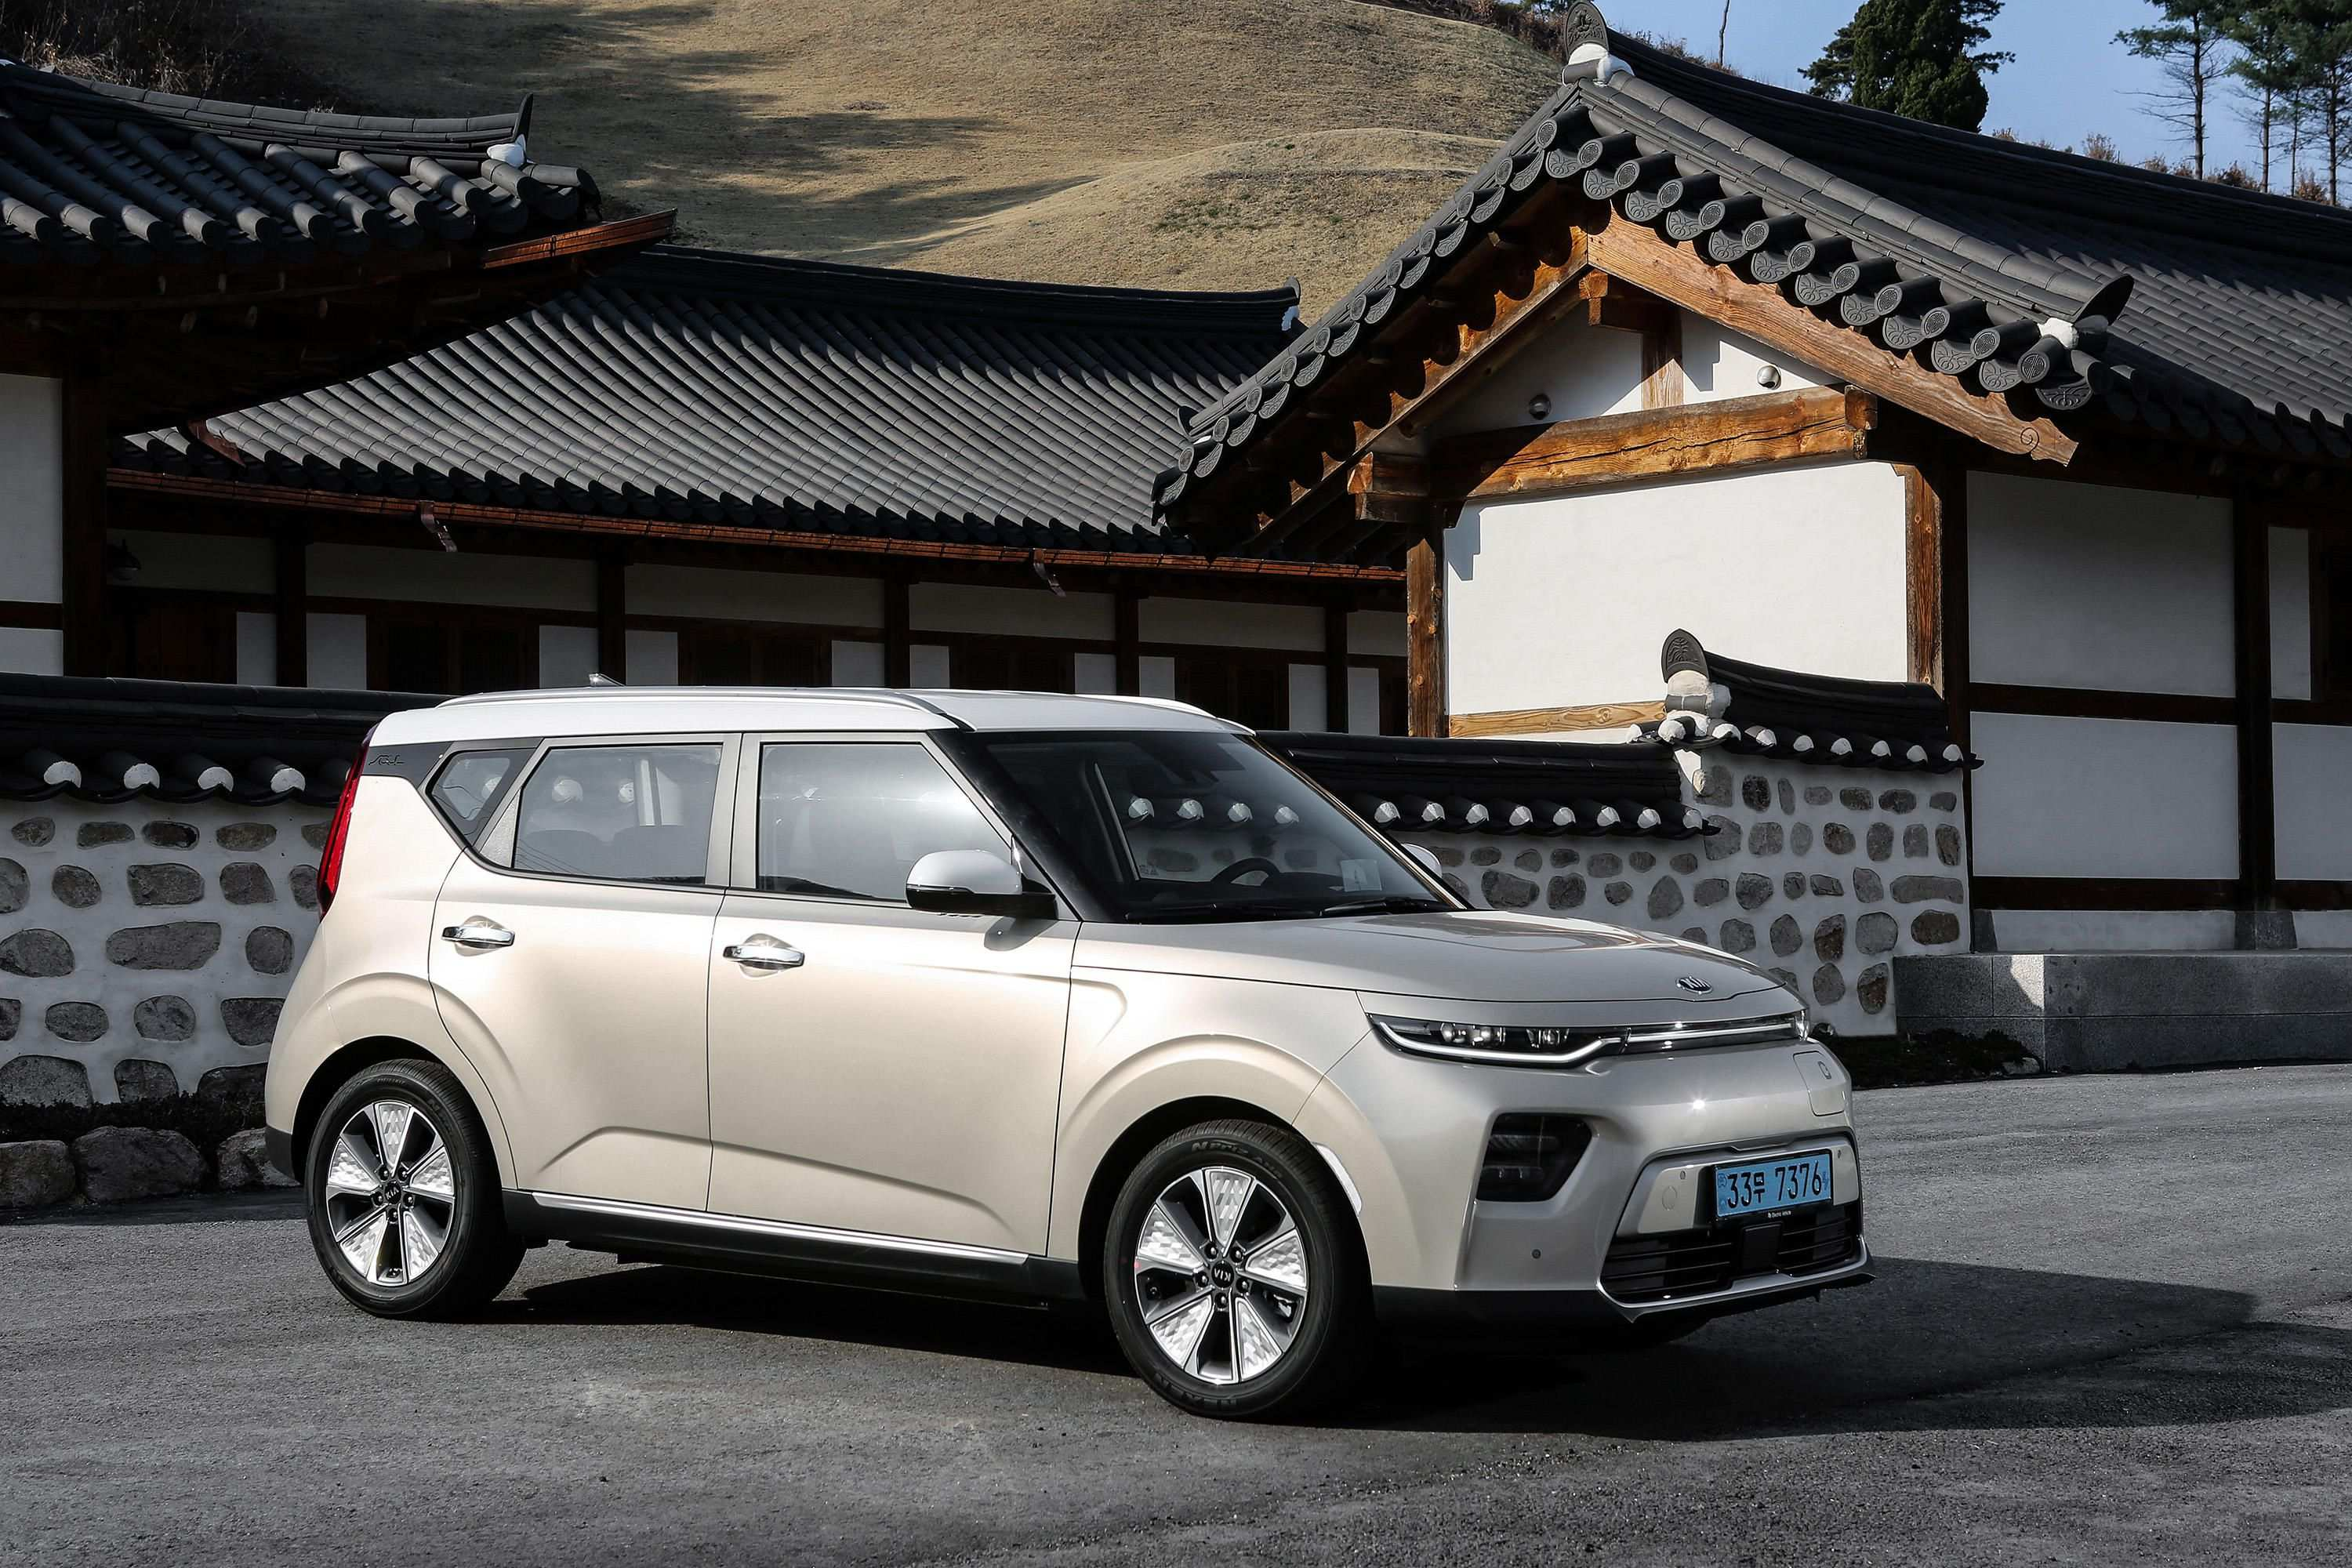 46 All New When Will 2020 Kia Soul Be Available Exterior